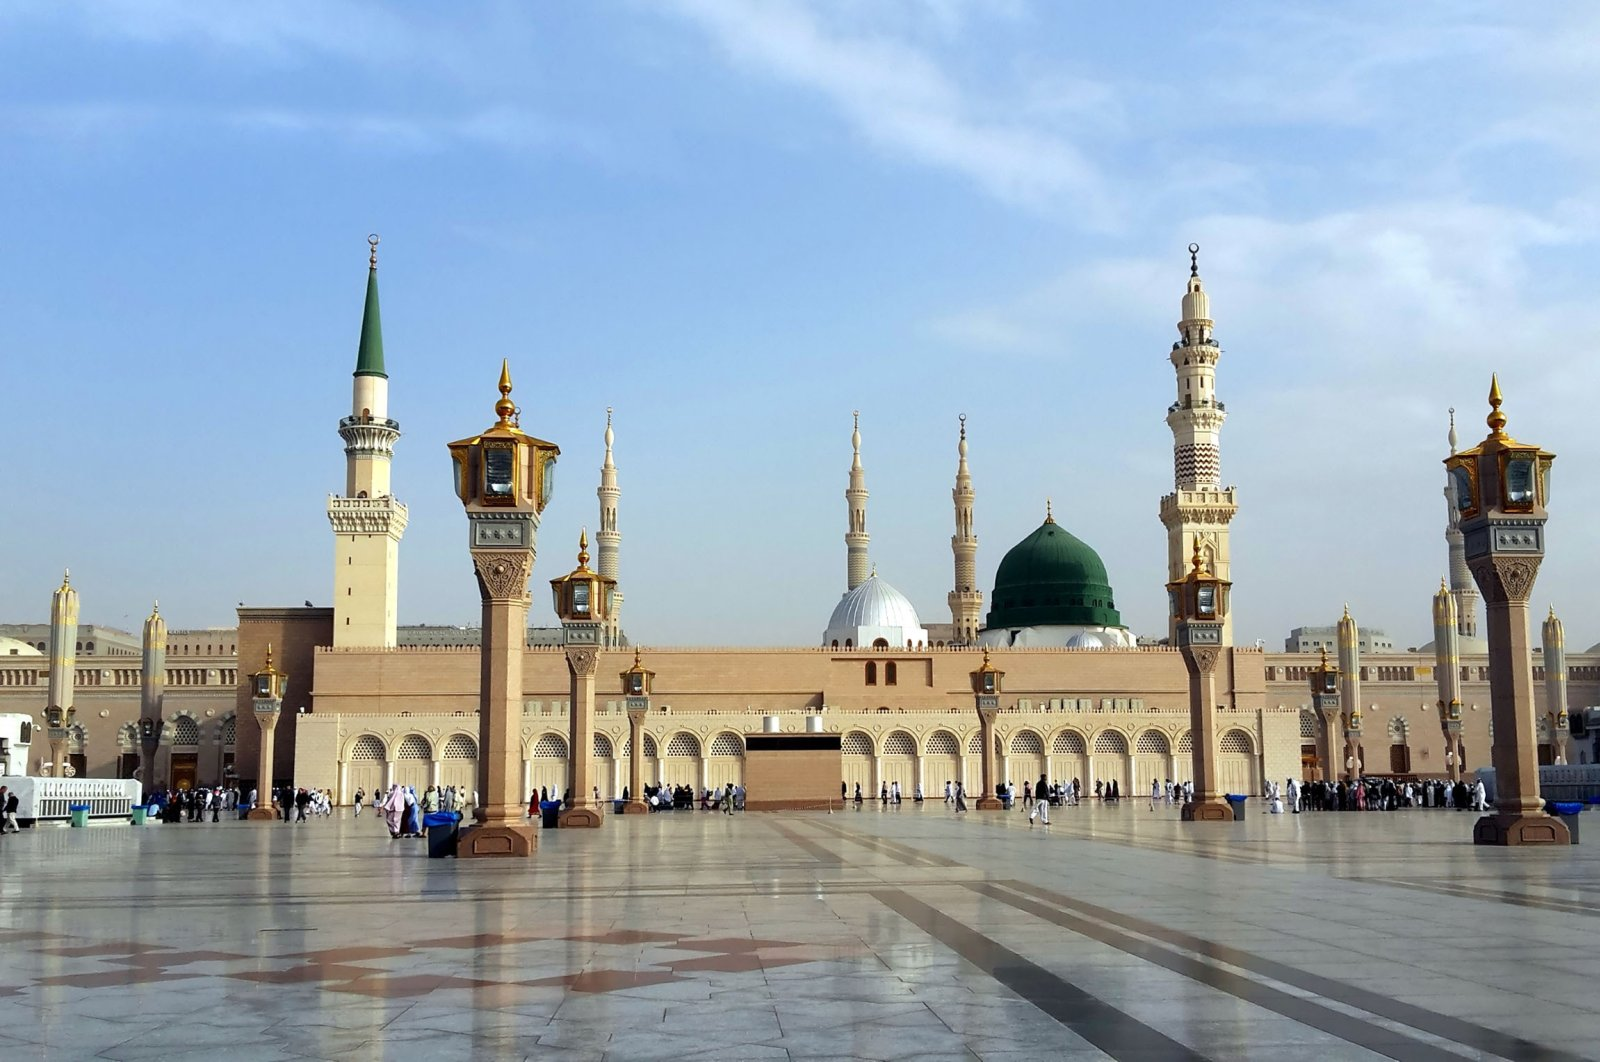 Al-Masjid al-Nabawi, often called the prophet's mosque, is the second holiest site in Islam in Medina, Saudi Arabia, Feb. 8, 2017. (Shutterstock Photo)